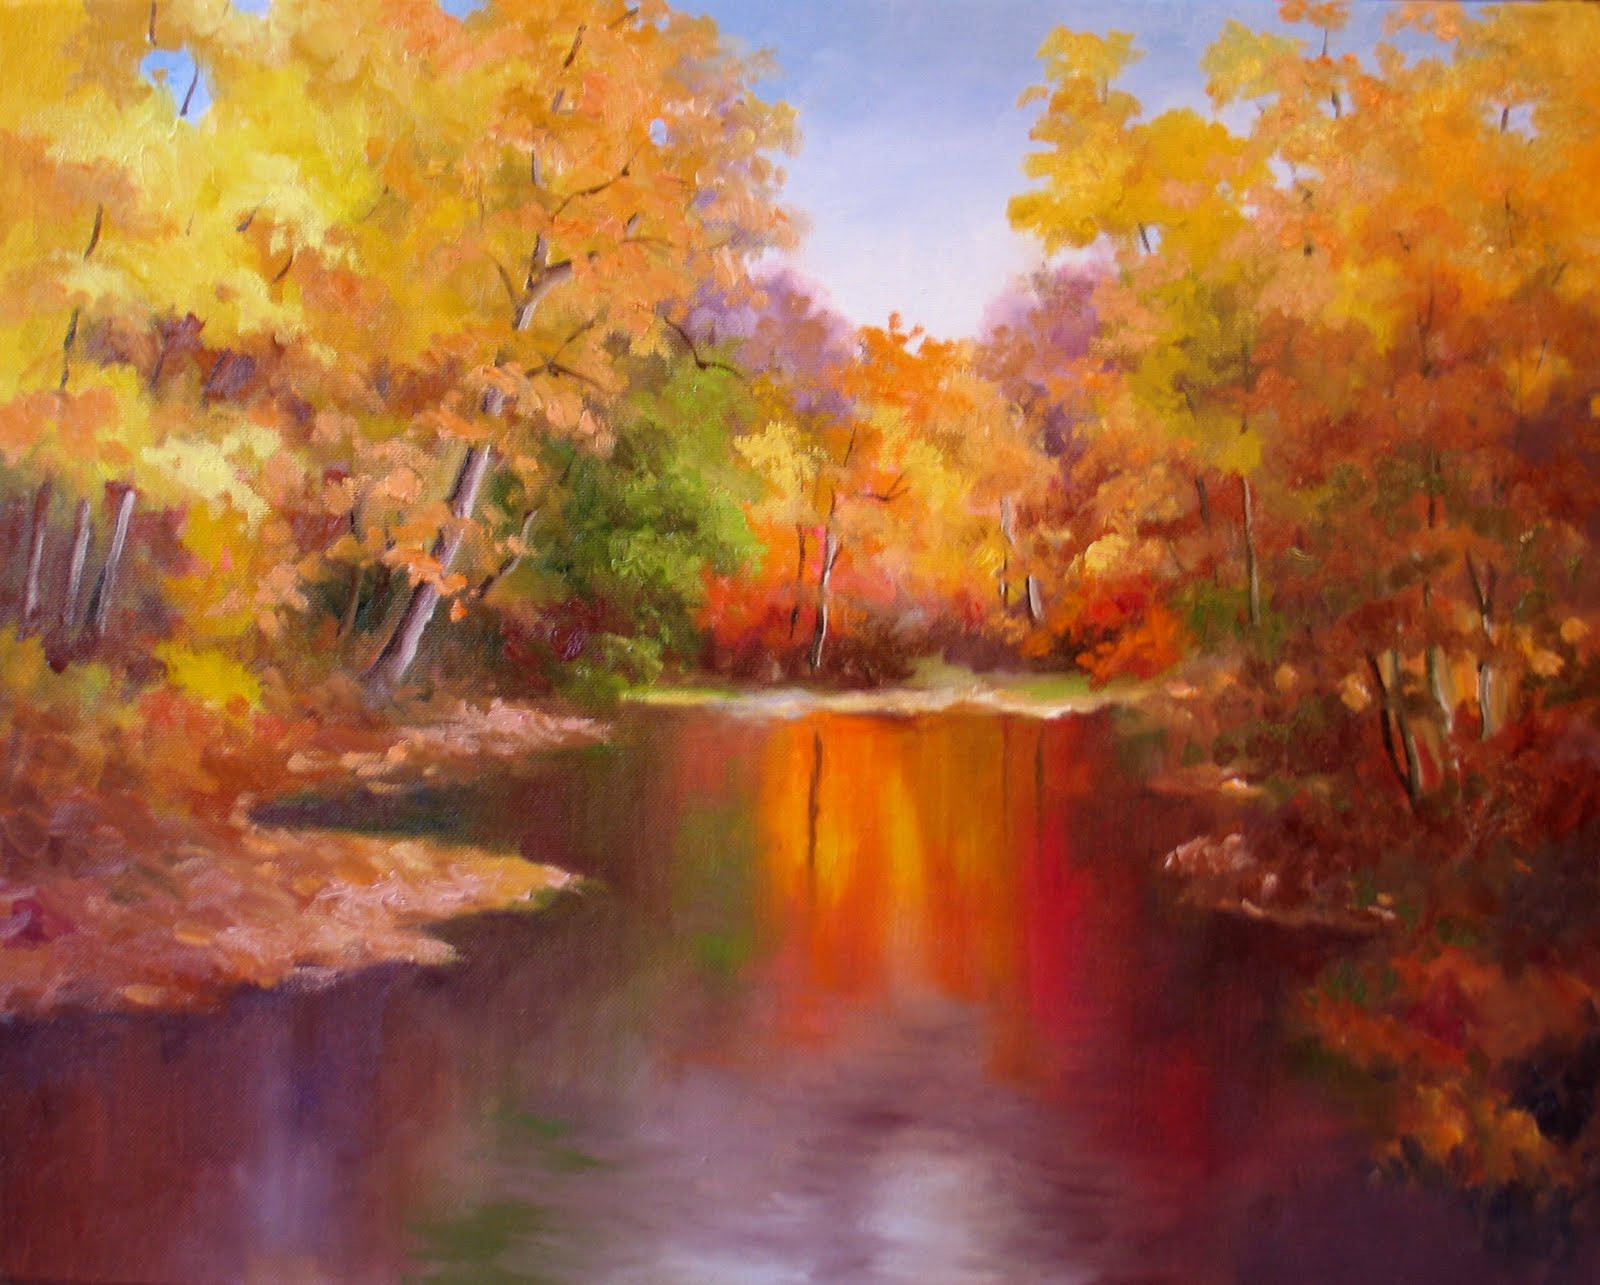 Fall Landscape Painting  Nel s Everyday Painting 3 6 11 3 13 11